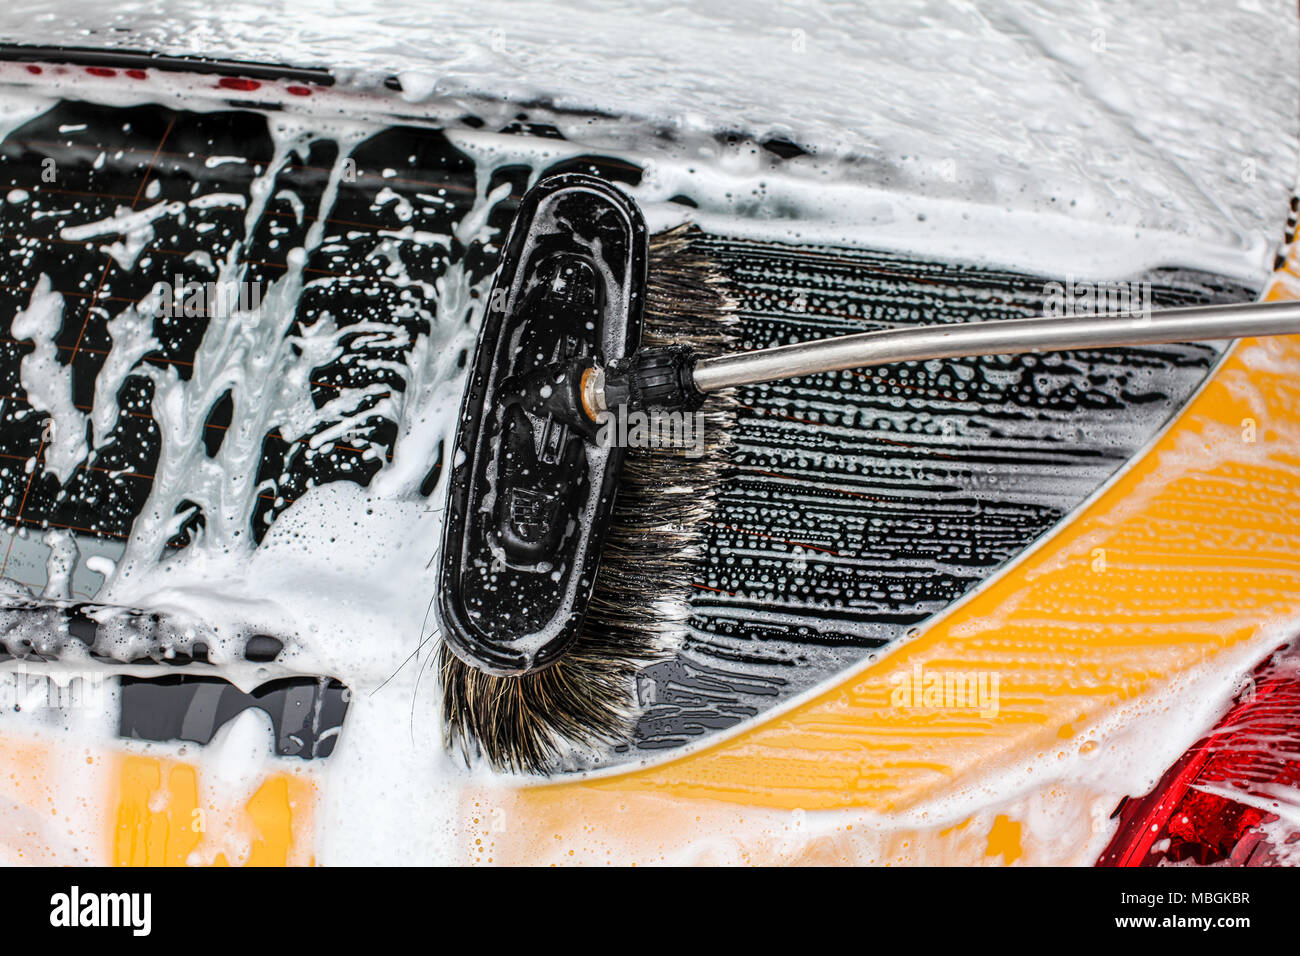 Detail of dark yellow car rear window washed in carwash. Brush leaving strokes in white soap and shampoo foam. - Stock Image